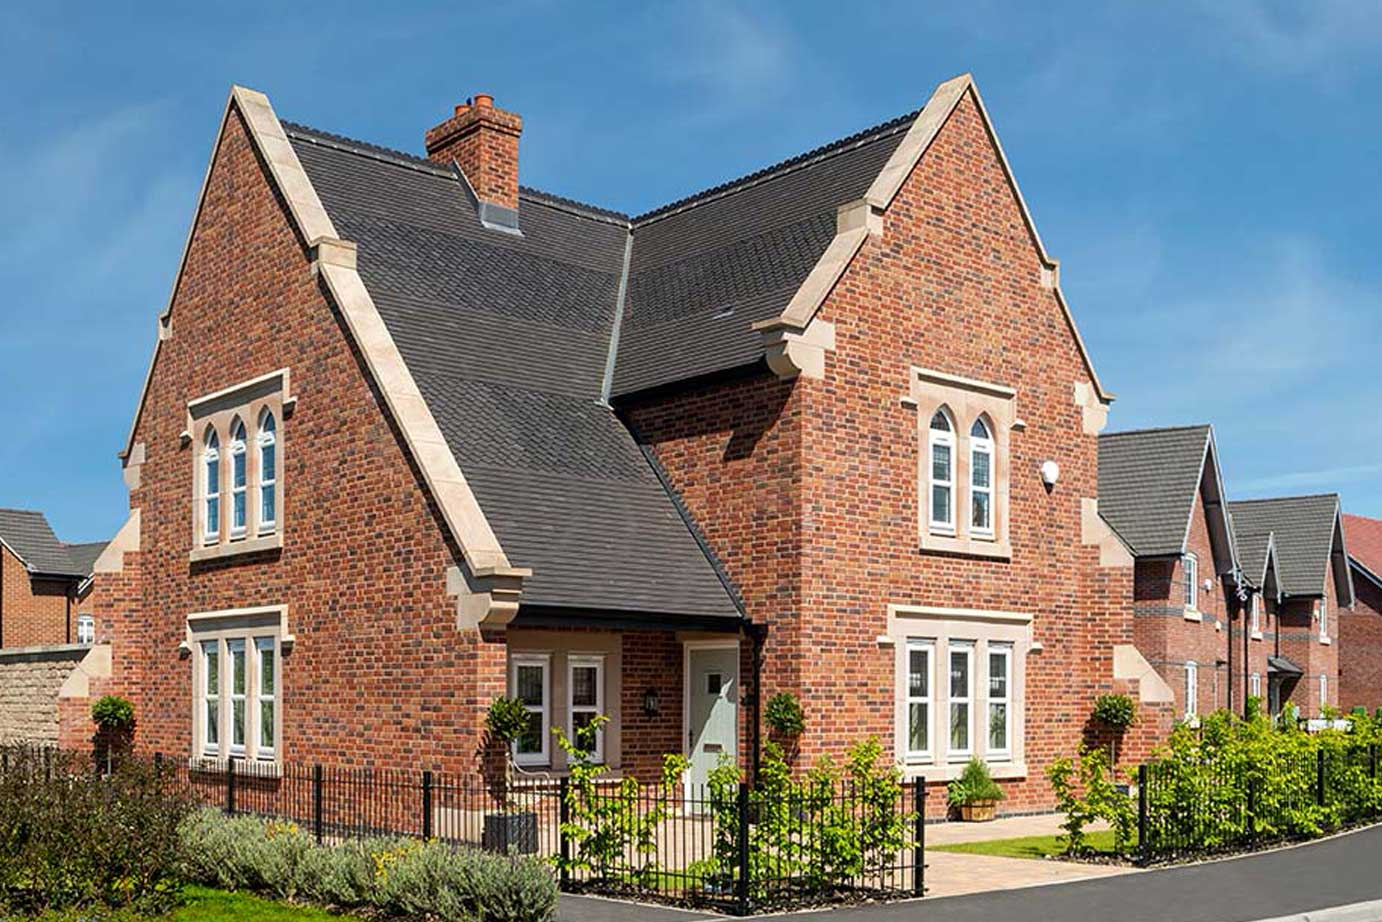 Peveril Homes - Peacehaven